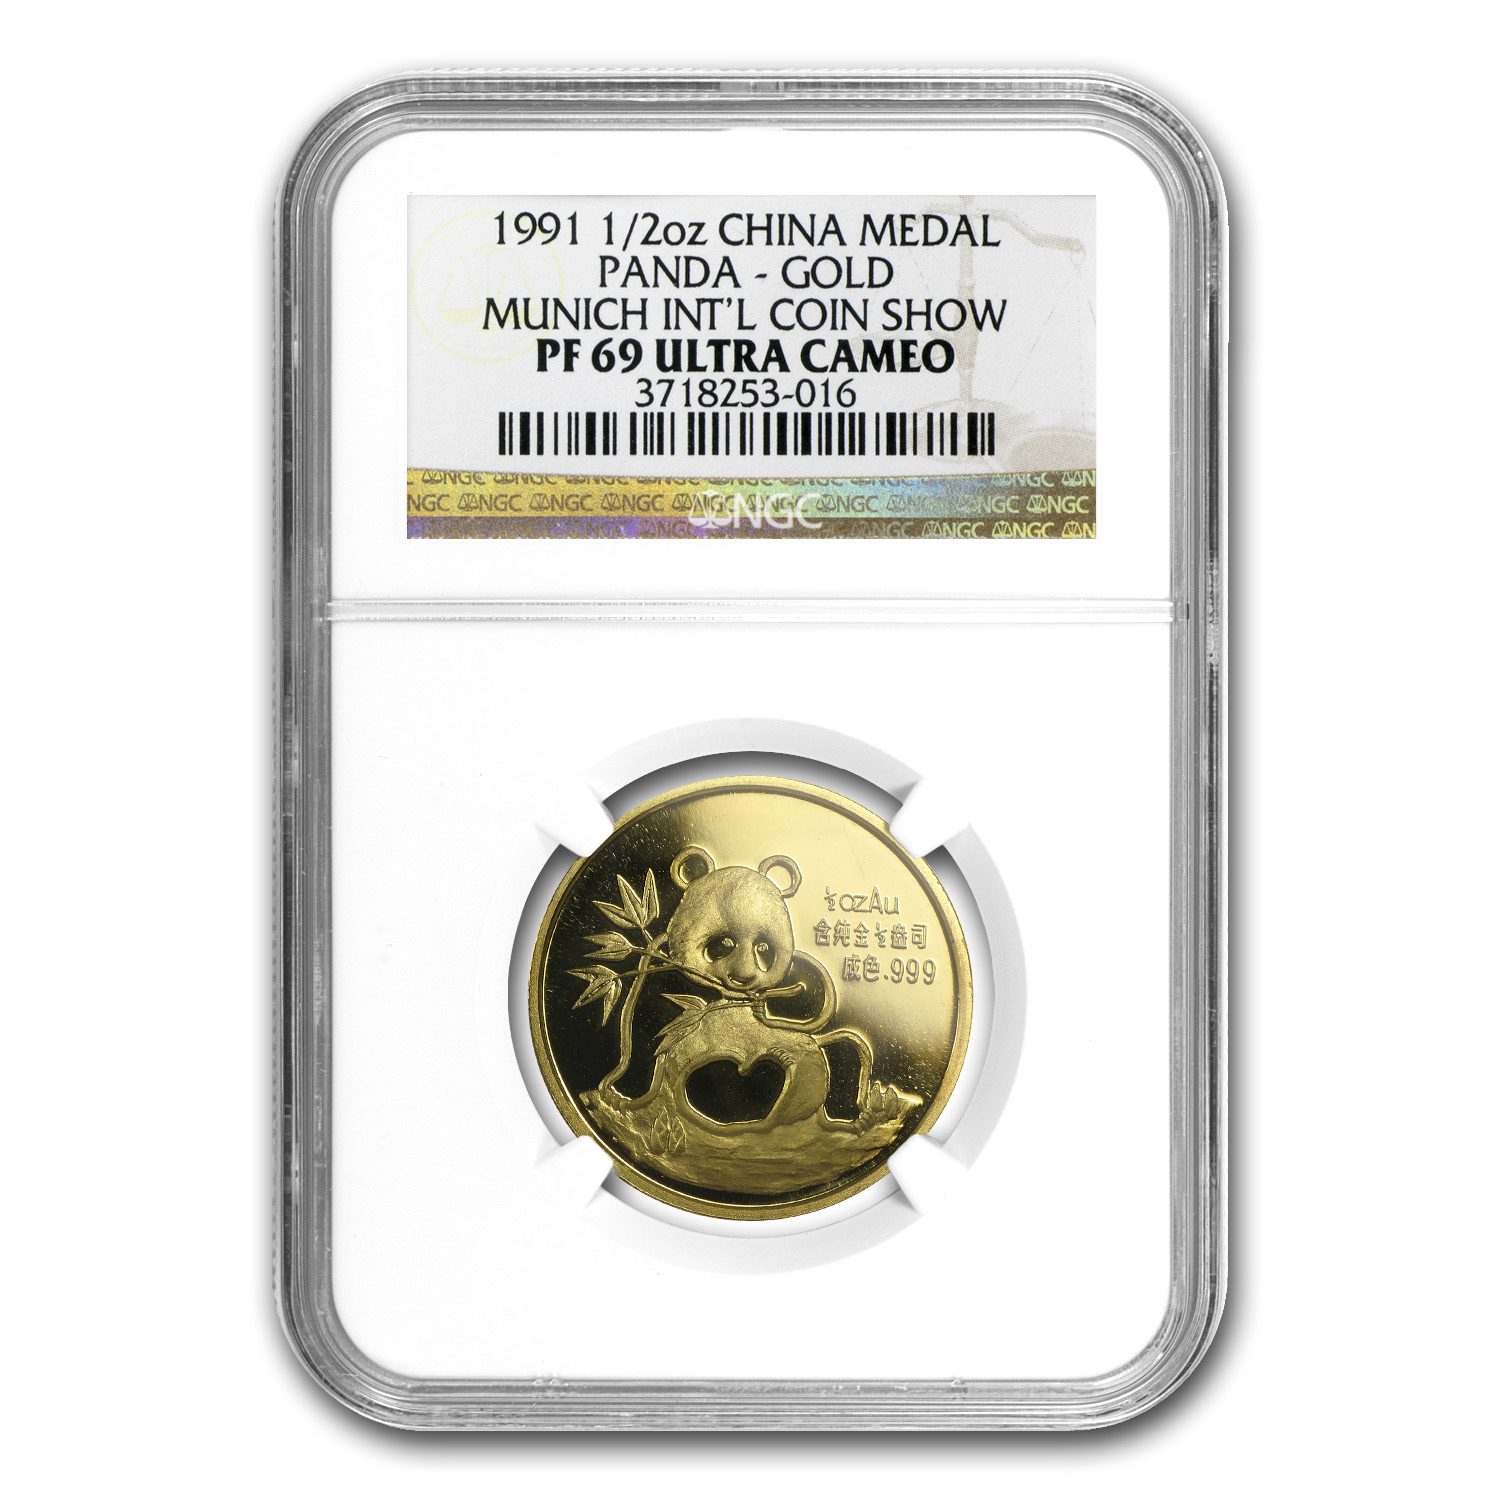 1991 China 1/2 oz Gold Panda PF-69 NGC (Munich Coin Fair Medal)